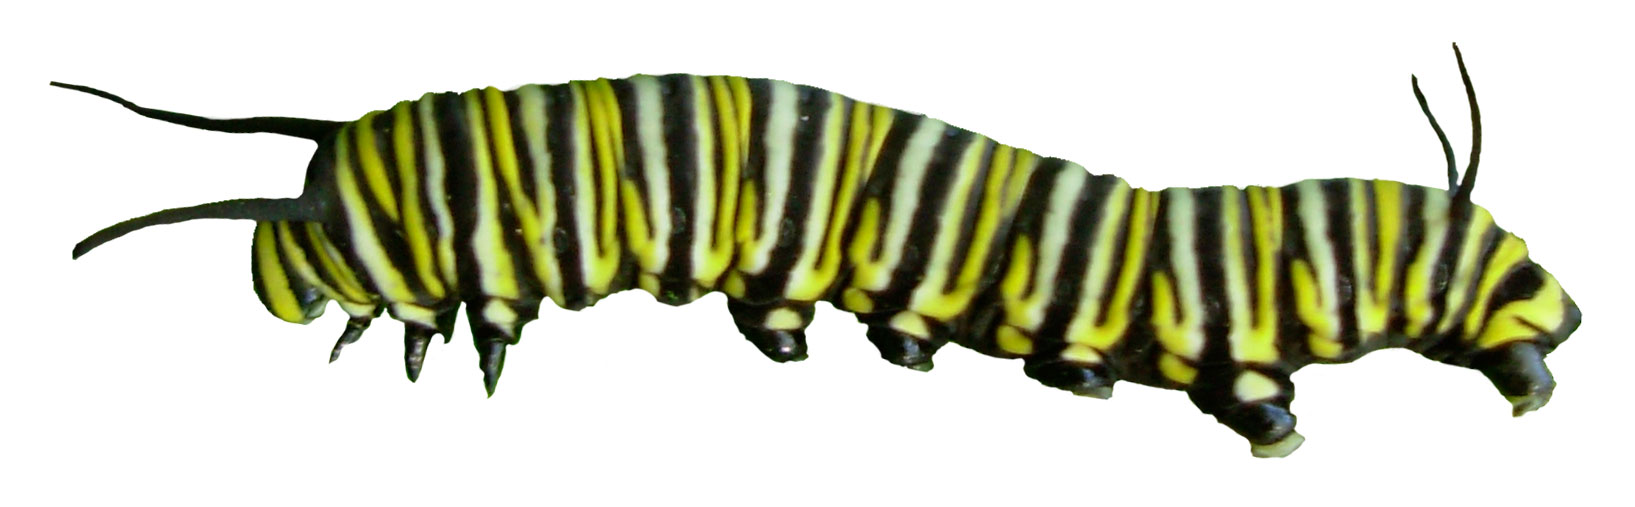 monarch caterpillar drawing at getdrawings com free for personal